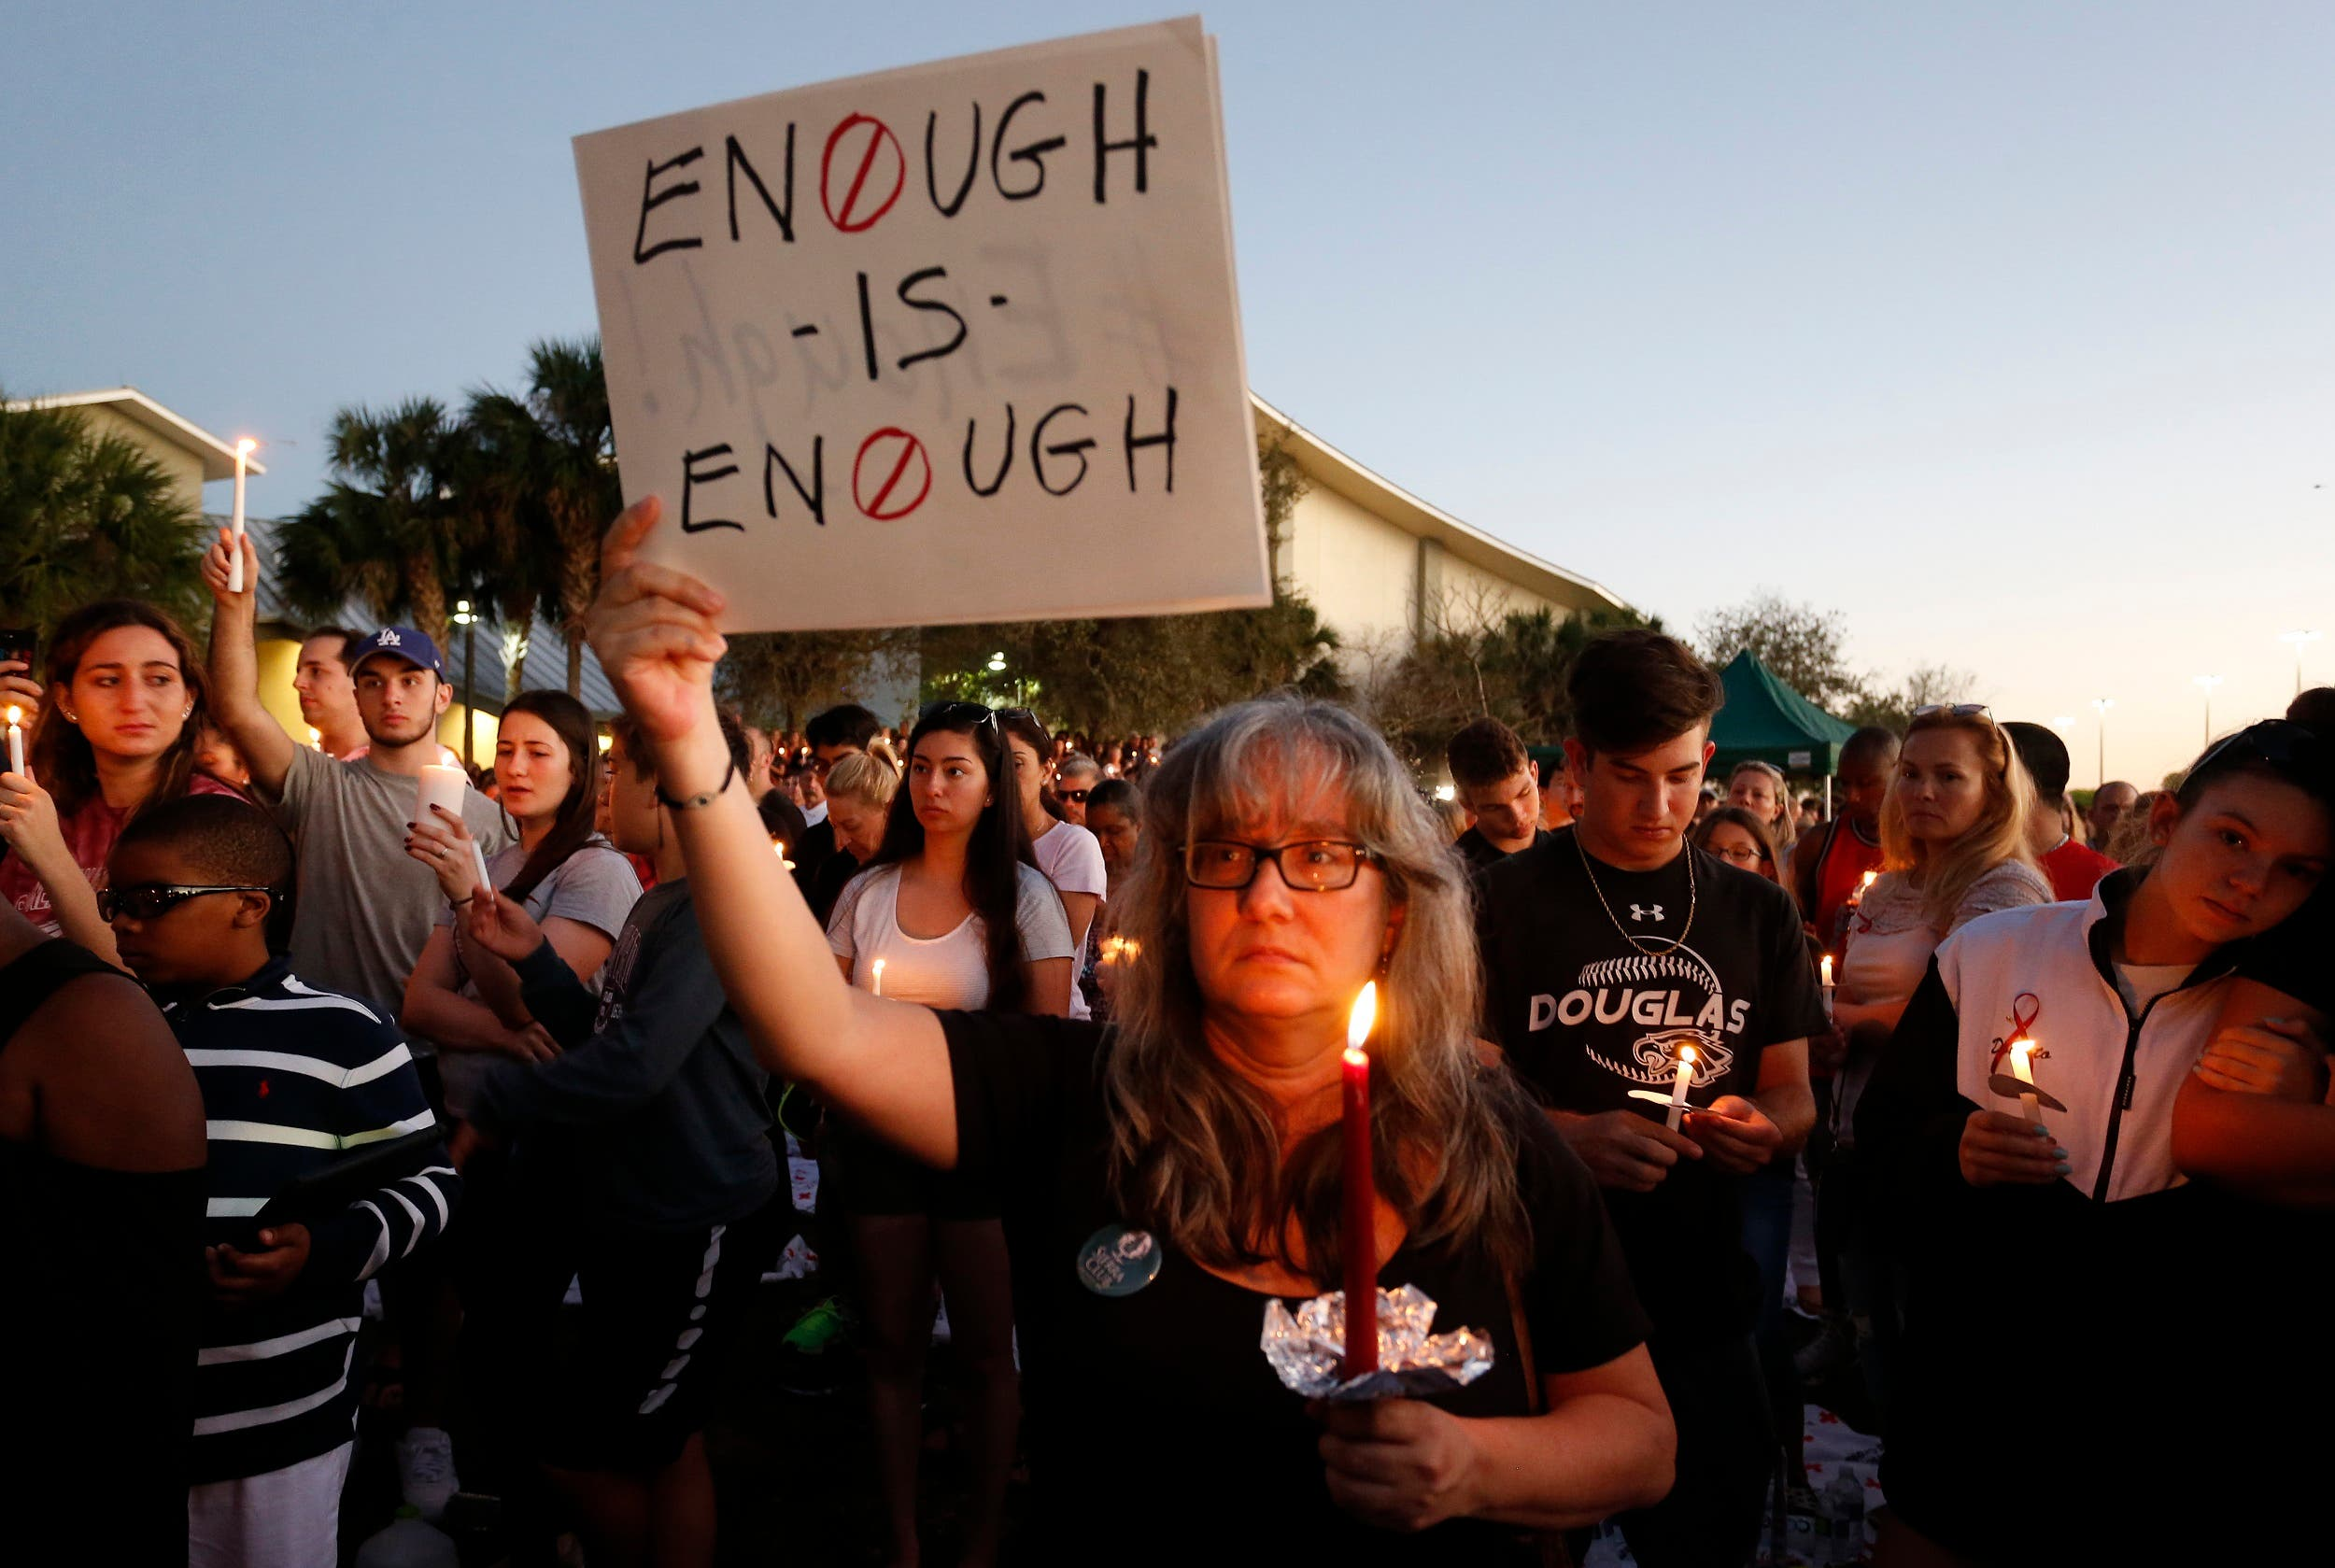 Mourners stand during a candlelight vigil for the victims of Marjory Stoneman Douglas High School shooting in Parkland, Florida on February 15, 2018. (AFP)